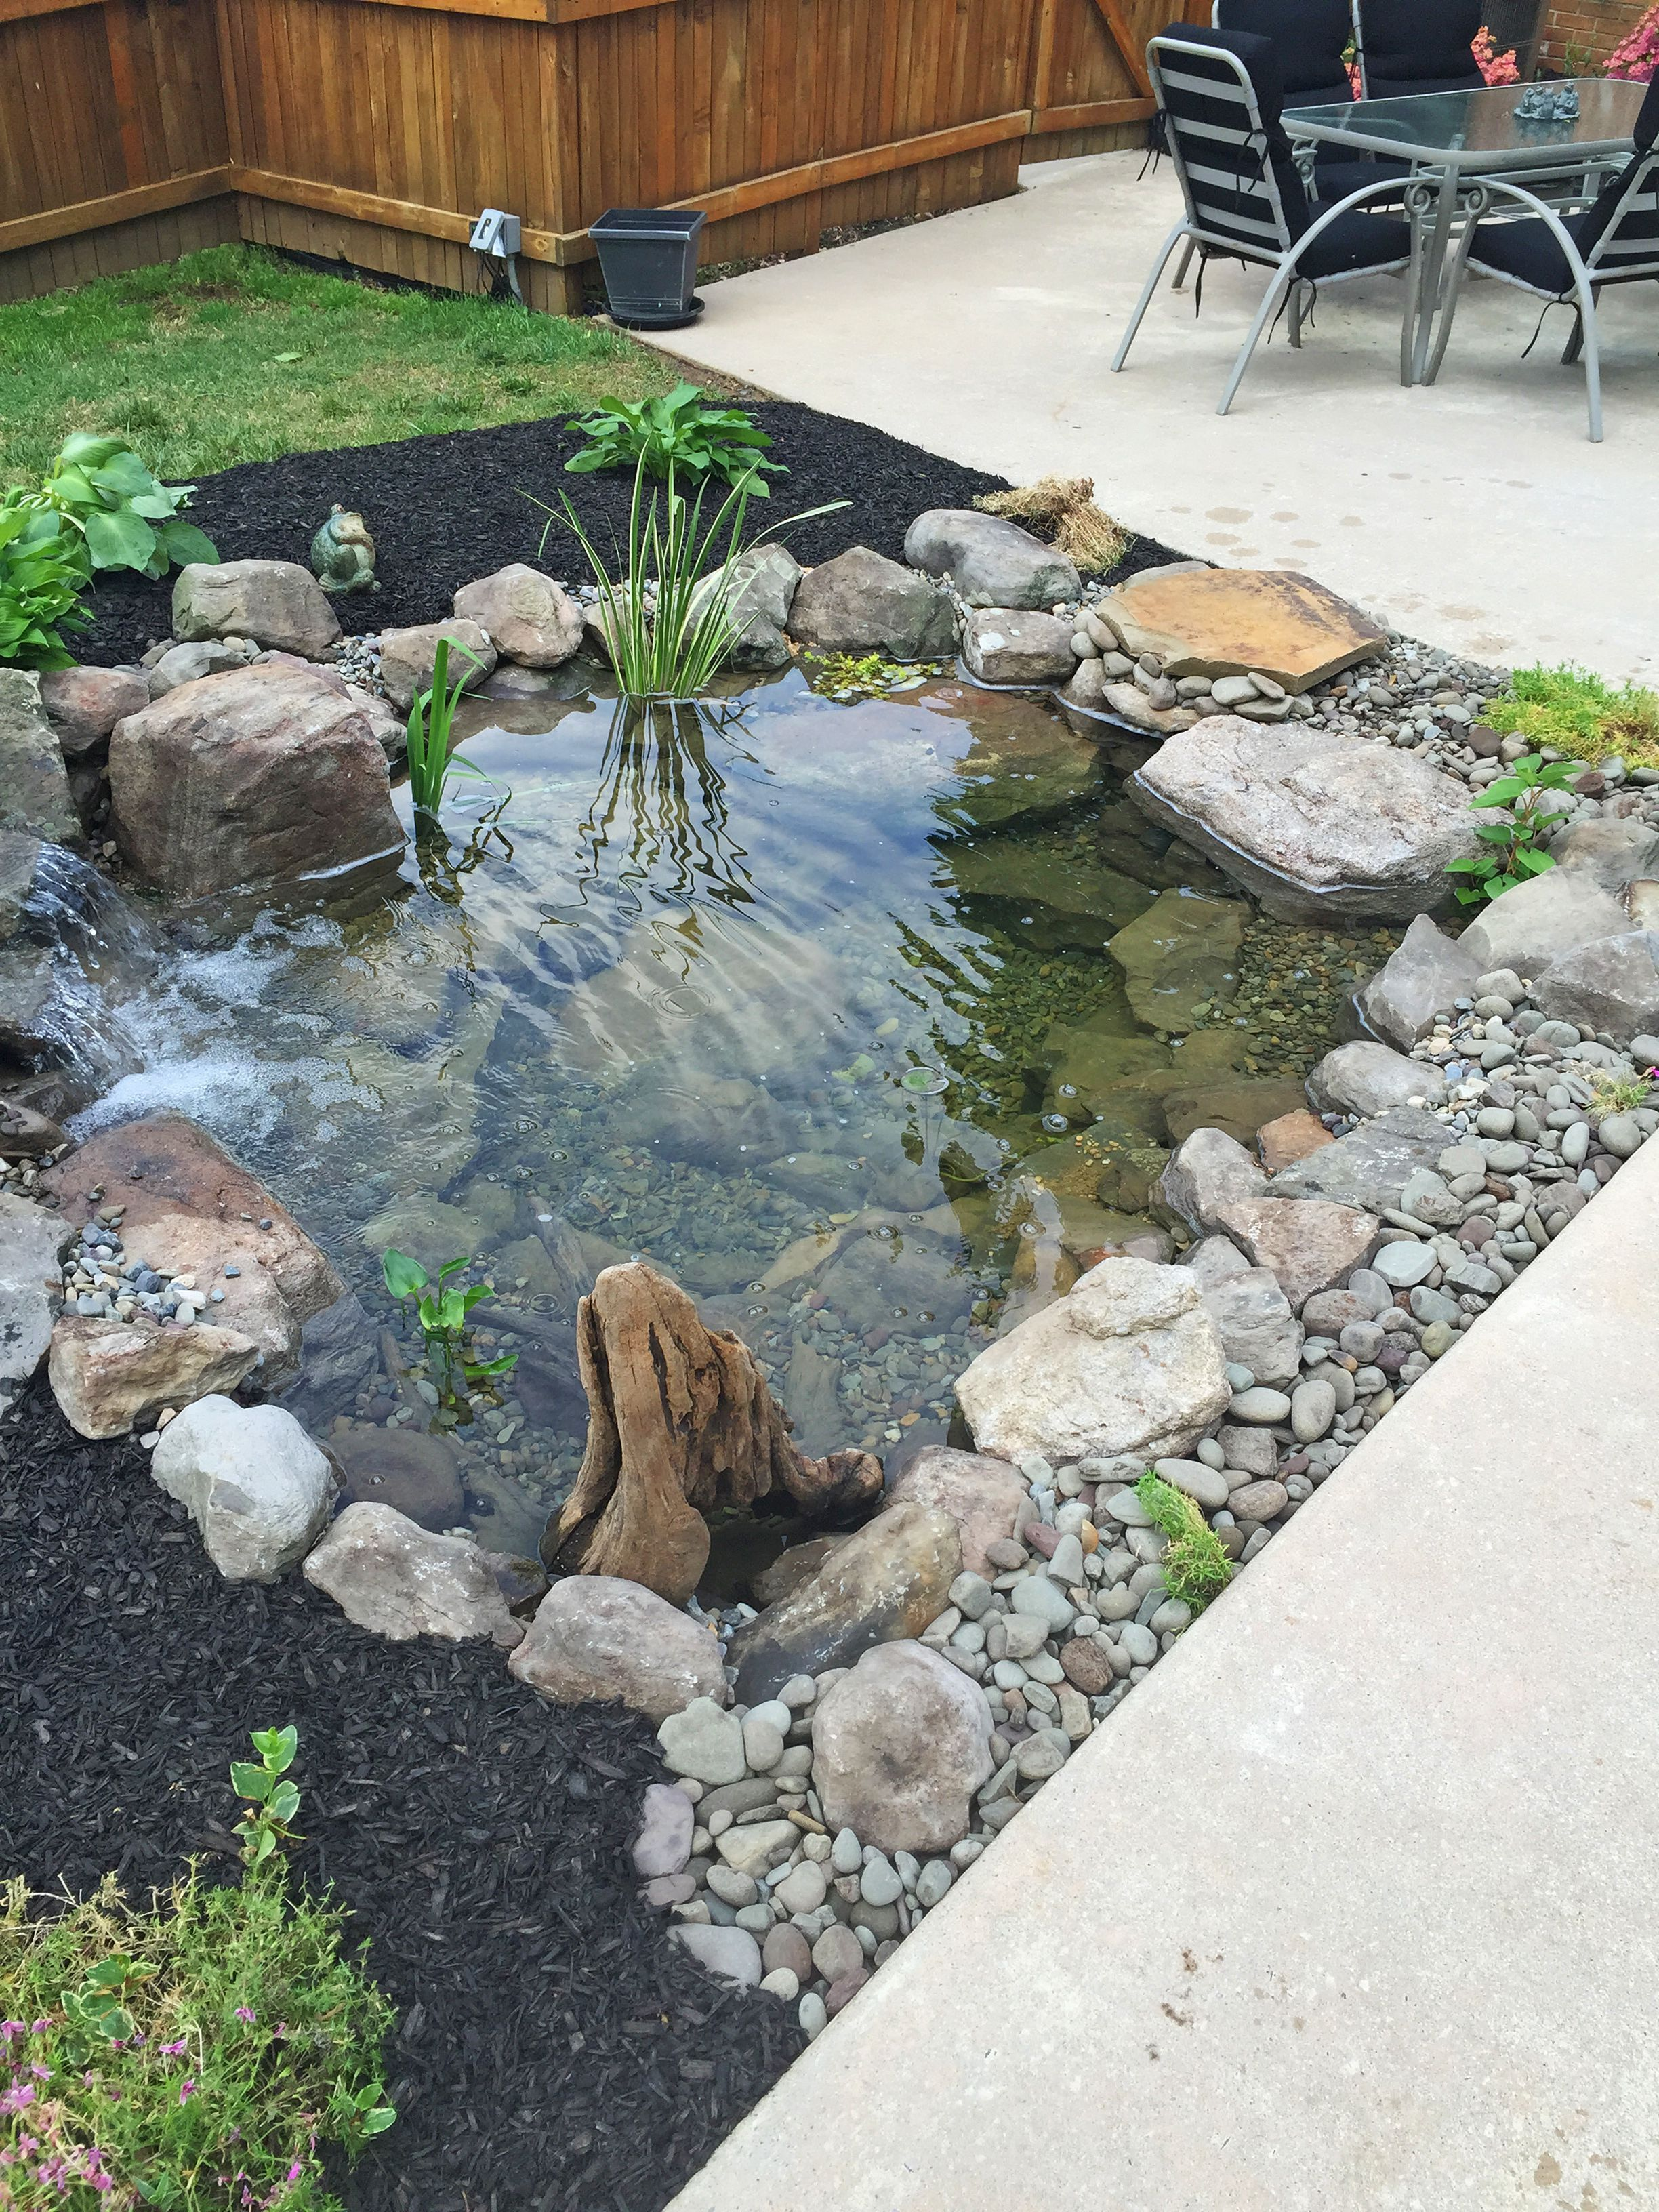 30 Awesome Home Garden Landscaping Ideas With Fish Pond Design Decor It S Ponds Backyard Fish Pond Gardens Backyard Water Feature Backyard fish farming ideas